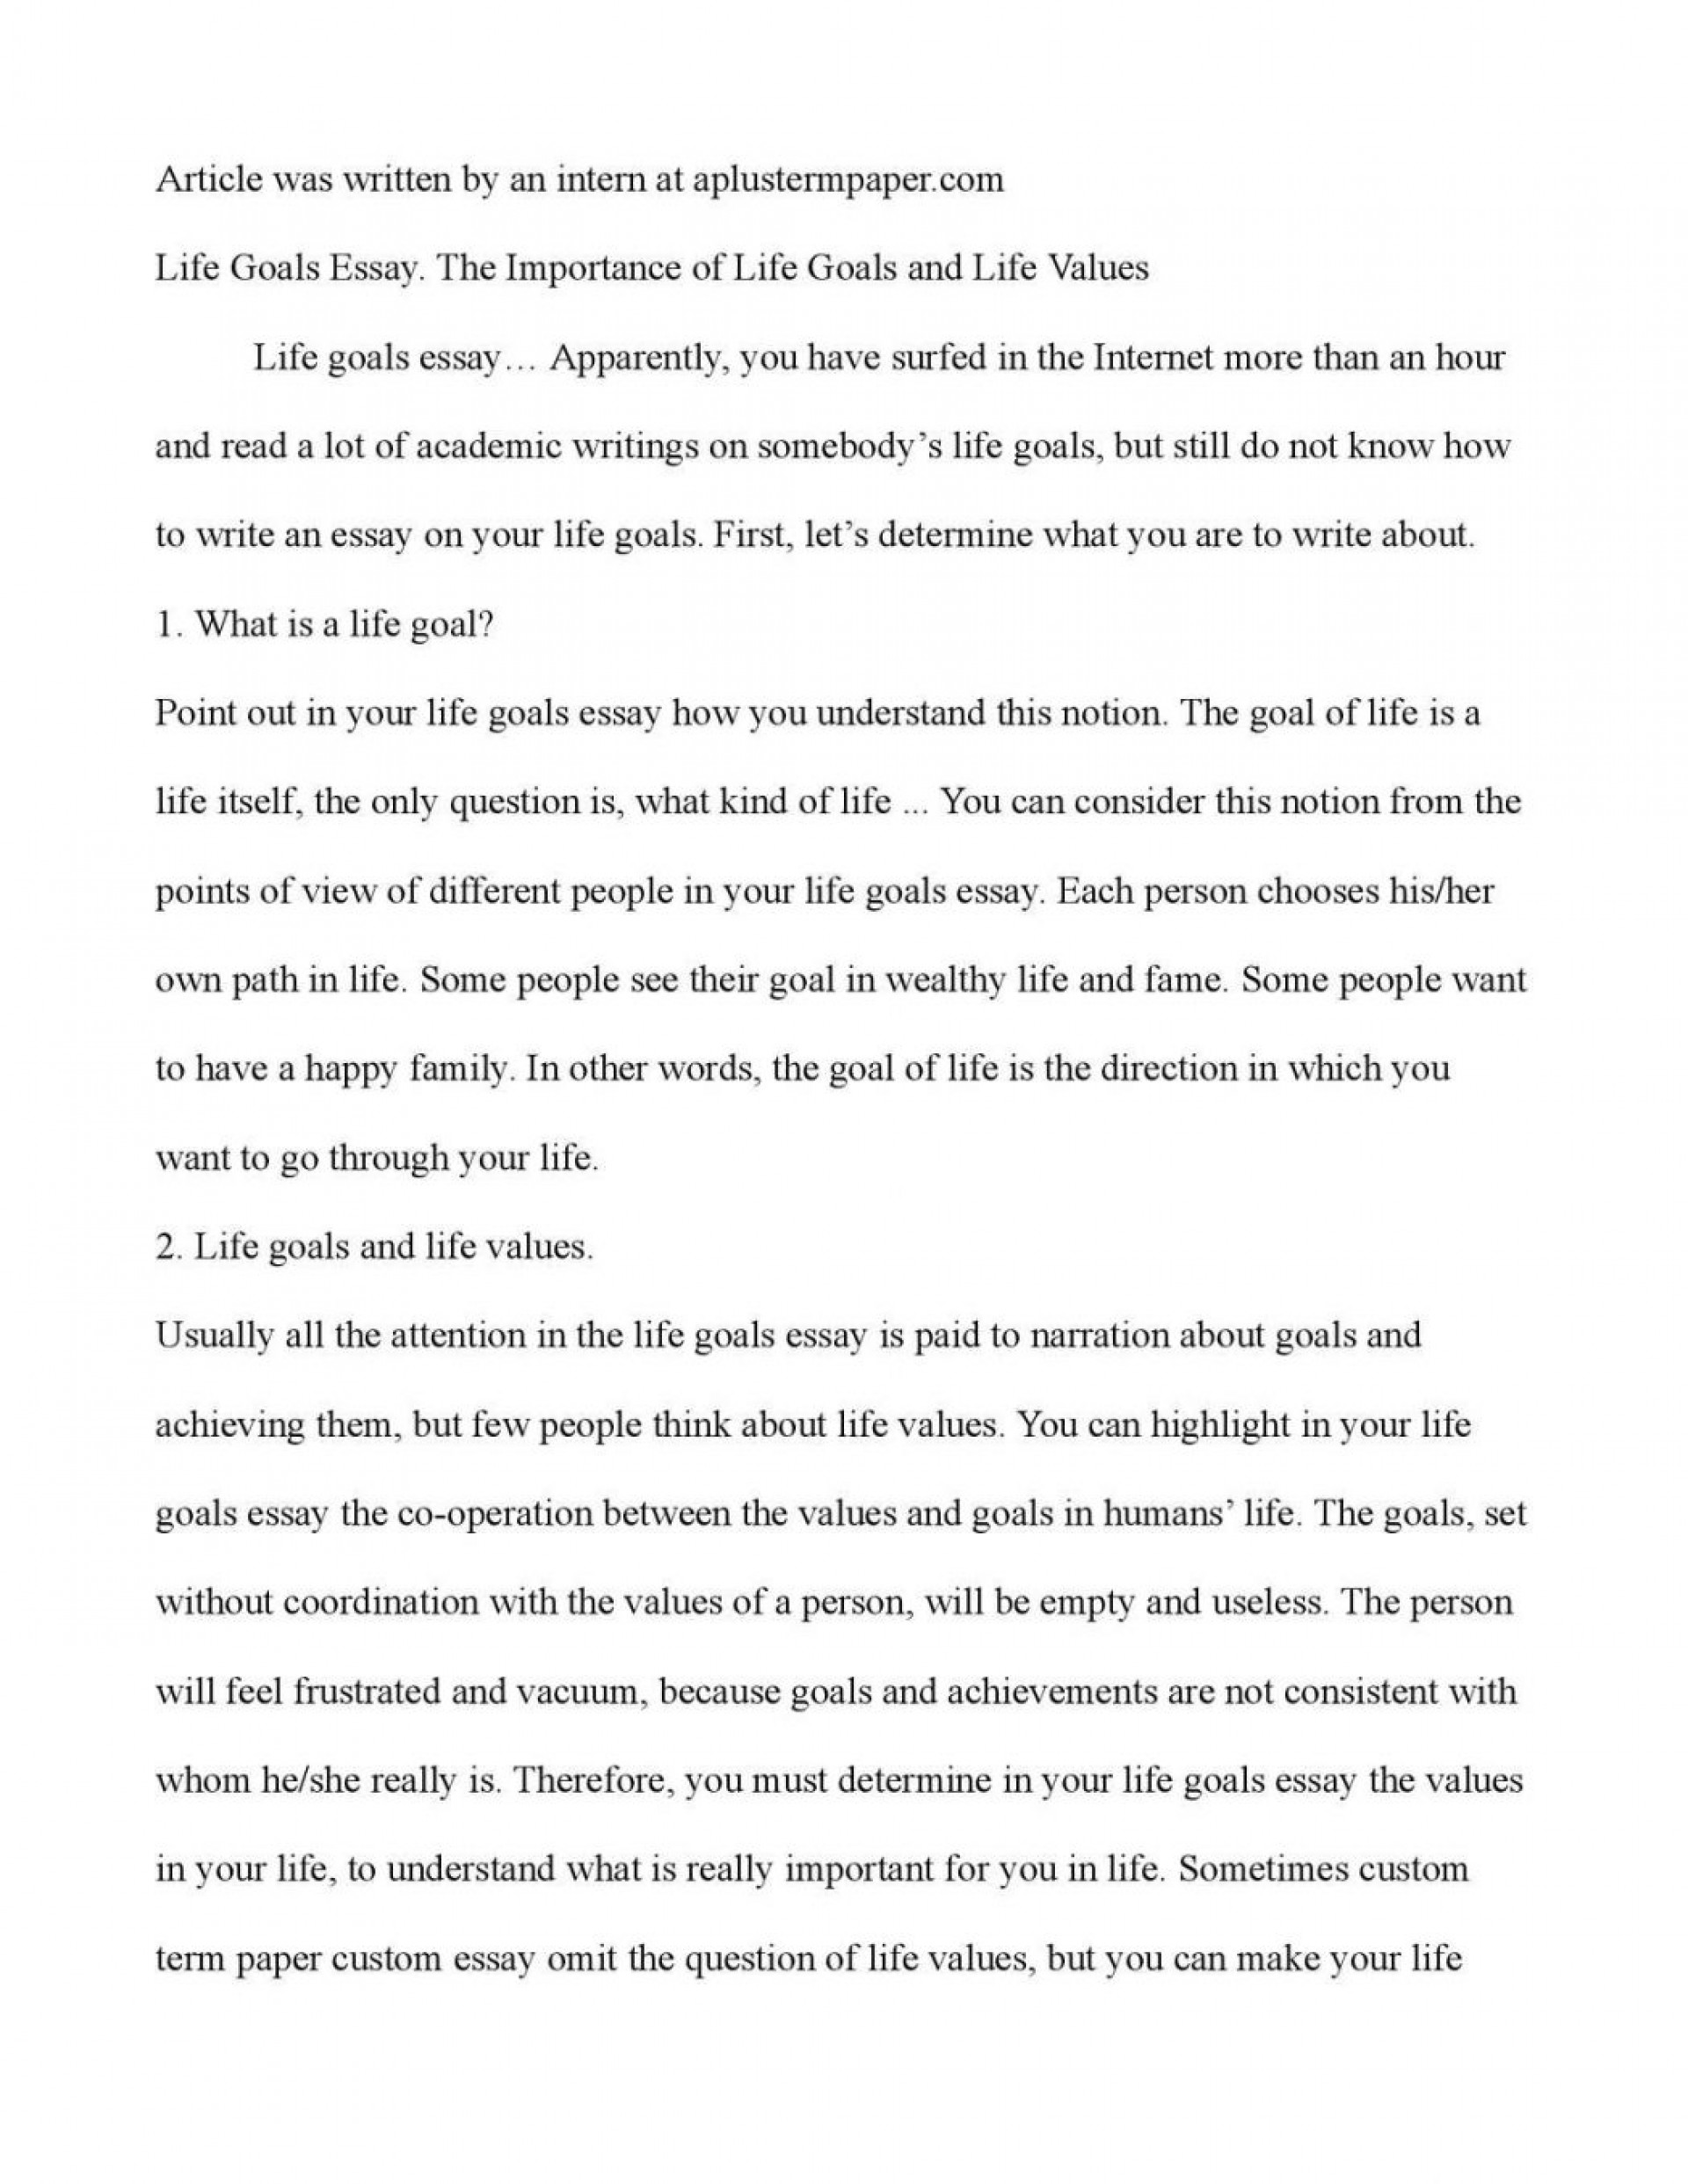 009 Essay About Goals On Academic Educational And Career Exampls Pdf My What Are Your 1048x1356 Awesome In High School After Life 1920